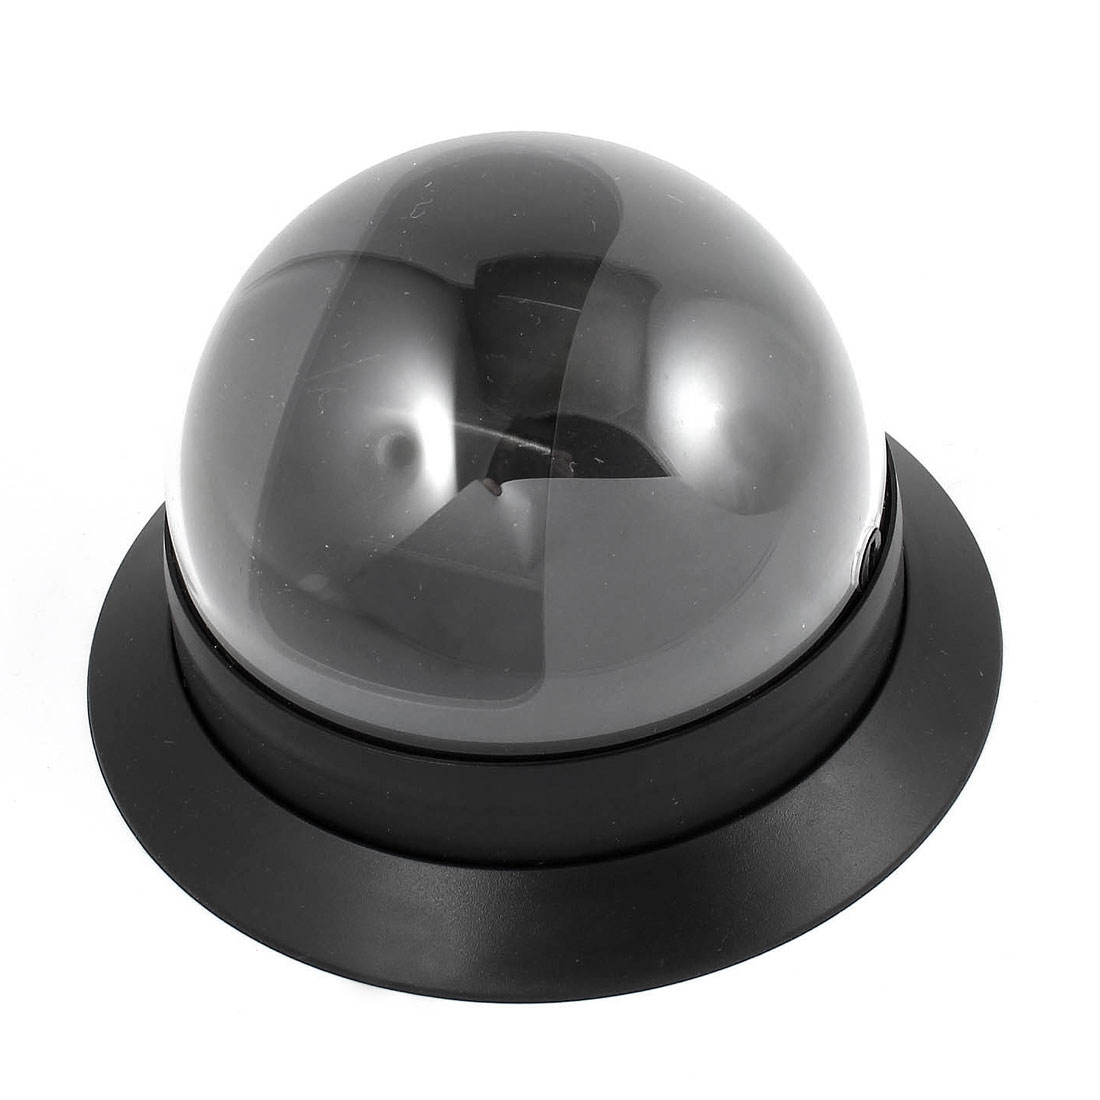 Indoor Surveillance Black Plastic CCTV Dome Camera Housing Case